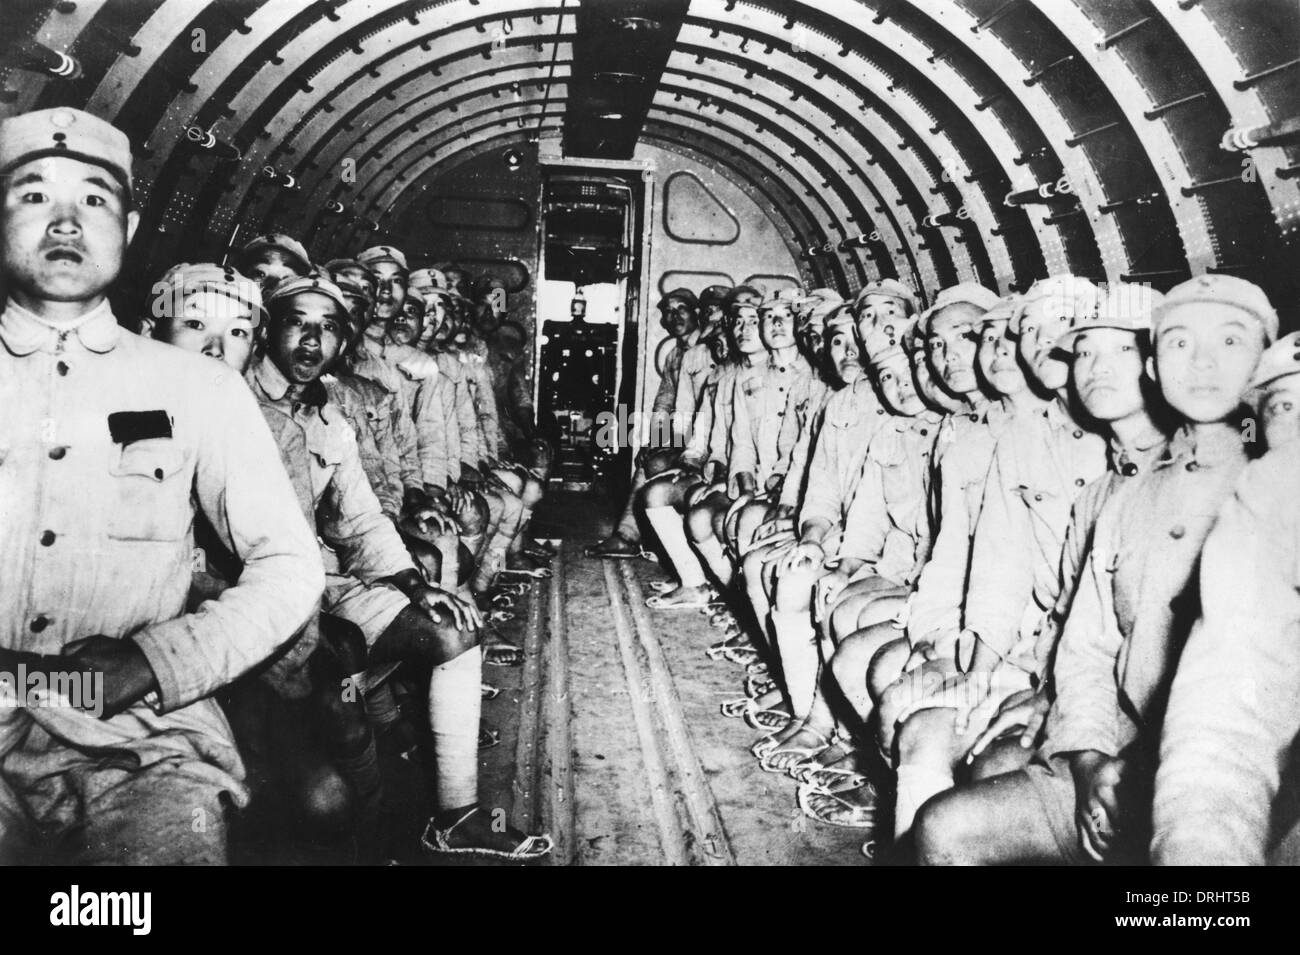 Chinese troops on U.S. army plane - Stock Image